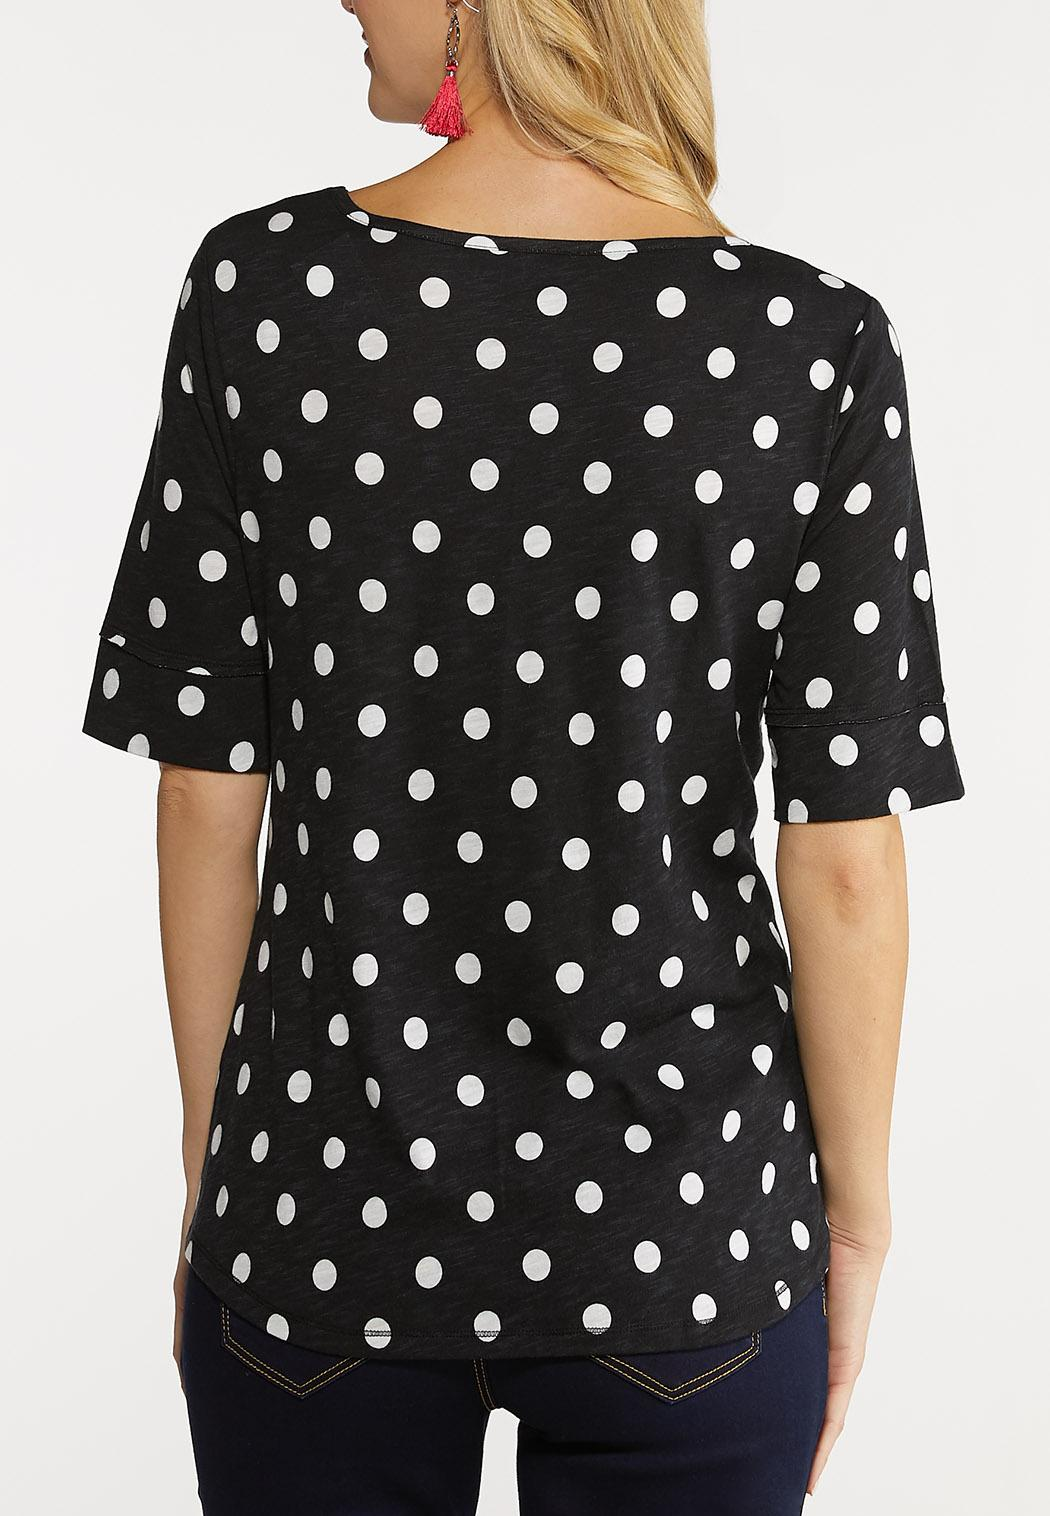 Polka Dotted Top (Item #44126778)